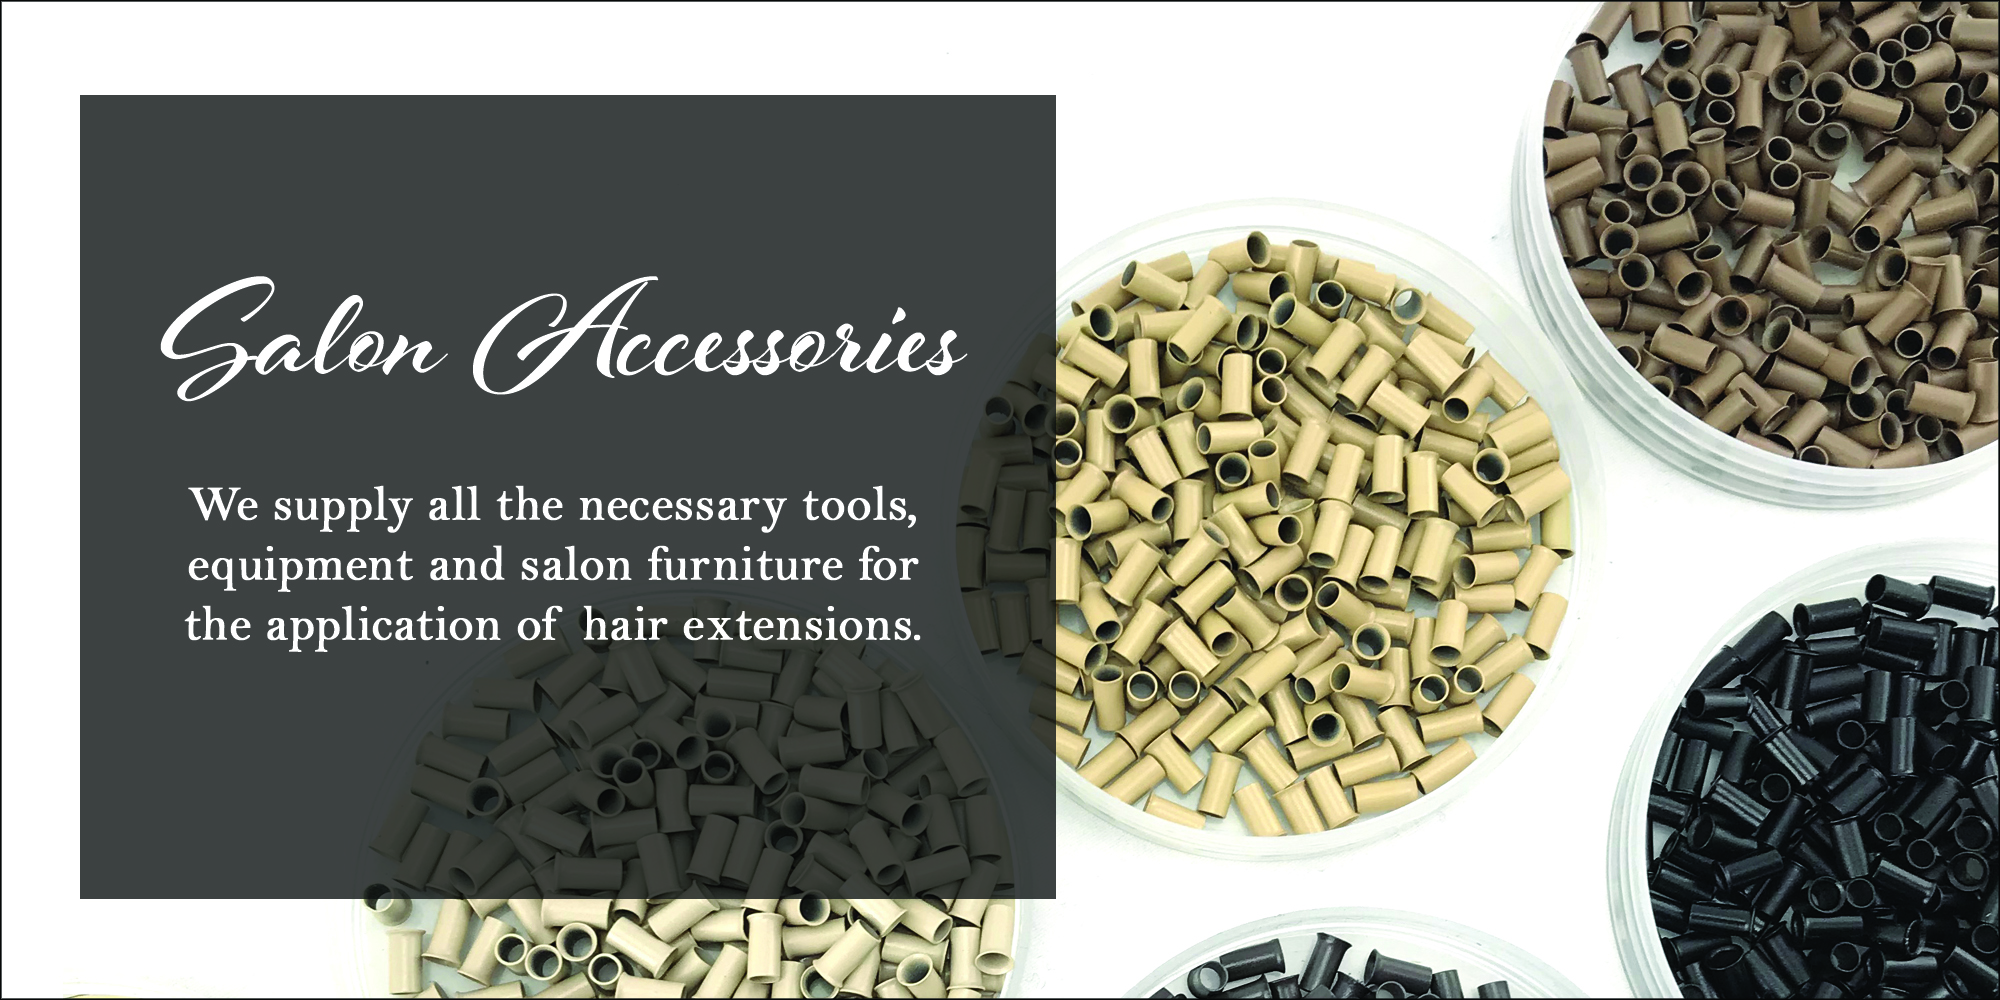 Salon Accessories